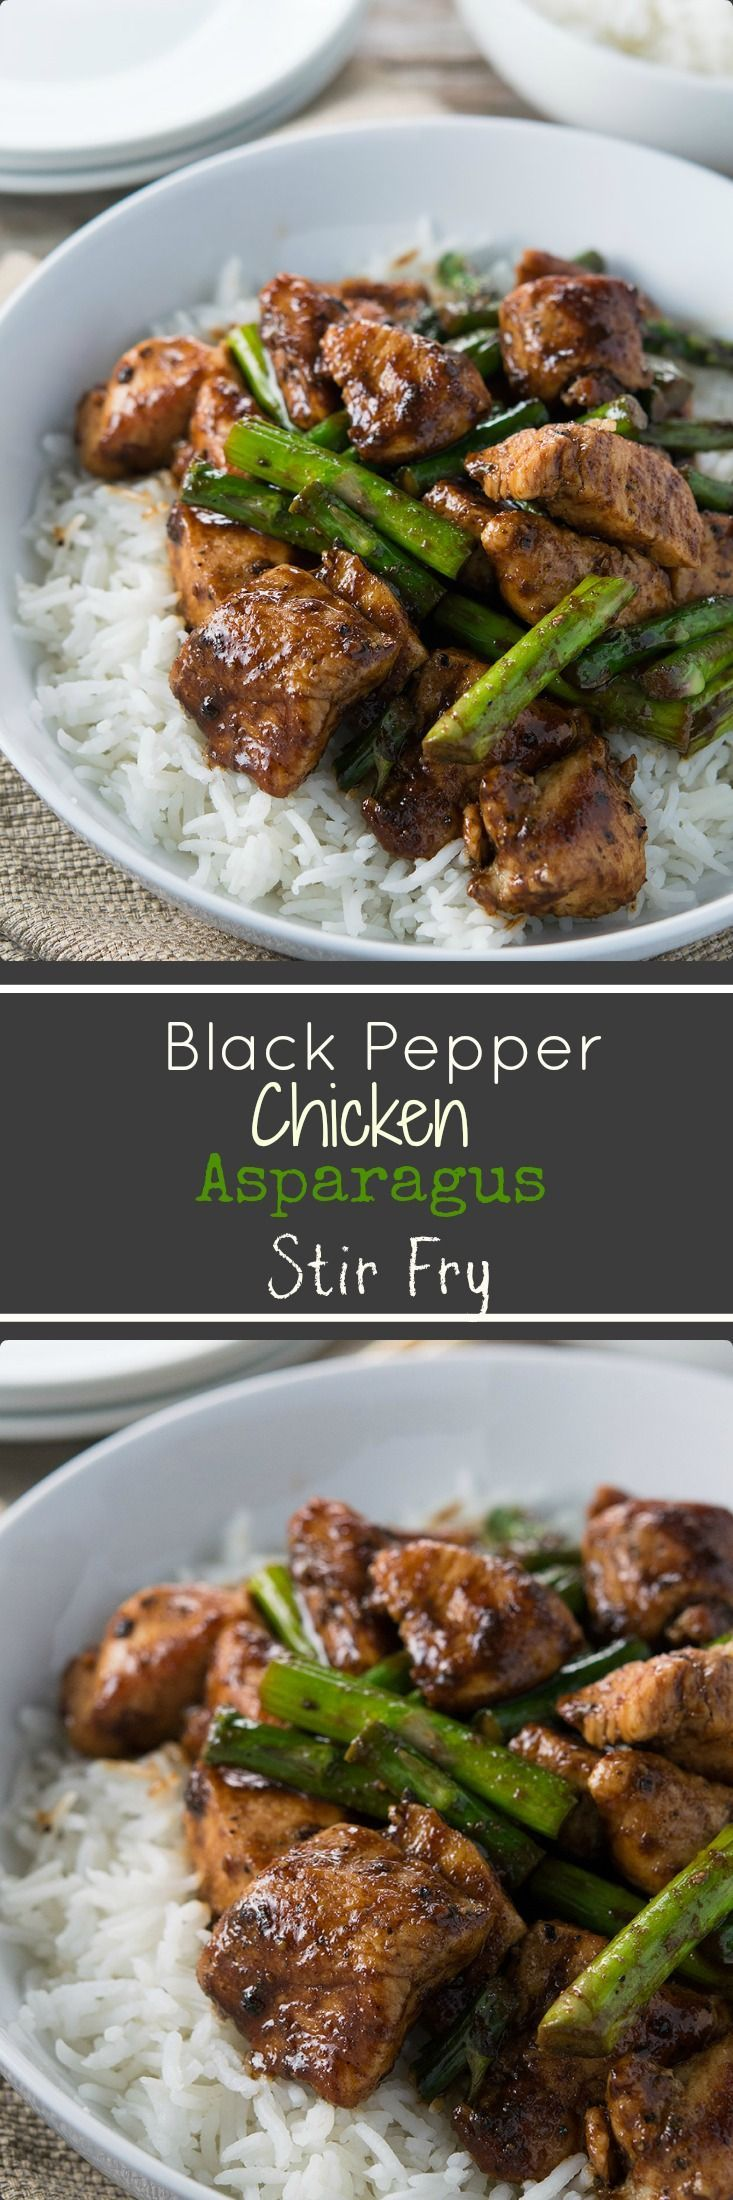 This quick black peppered chicken and asparagus stir fry gets all of it's flavor from leftover homemade black pepper sauce I use for my Crispy Black Peppered Chicken Wings.